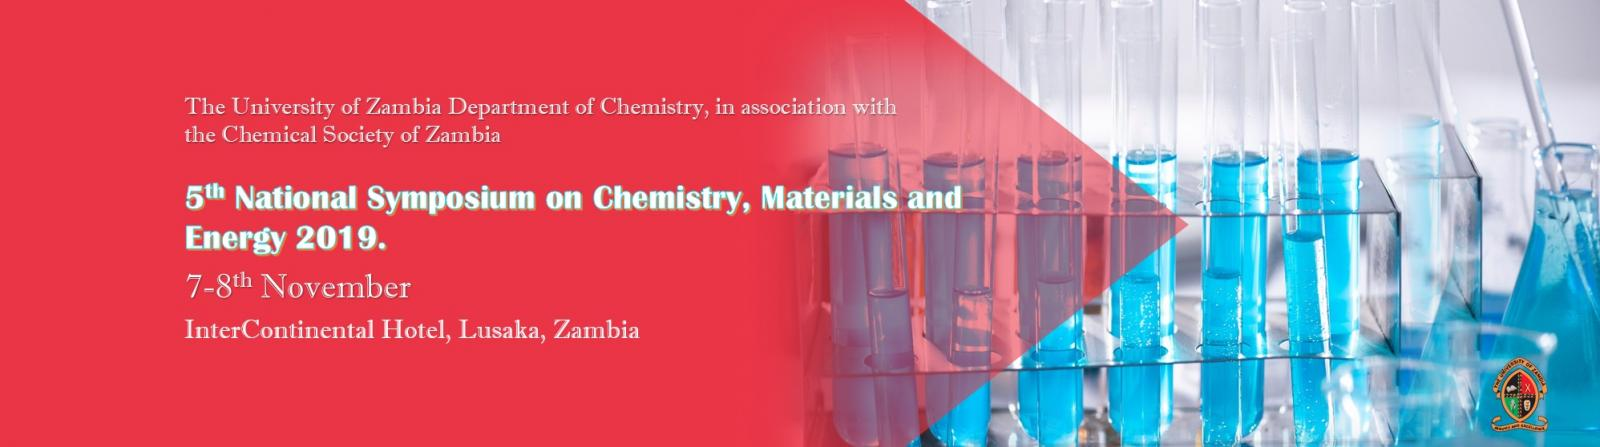 The 5th Annual Chemistry Symposium